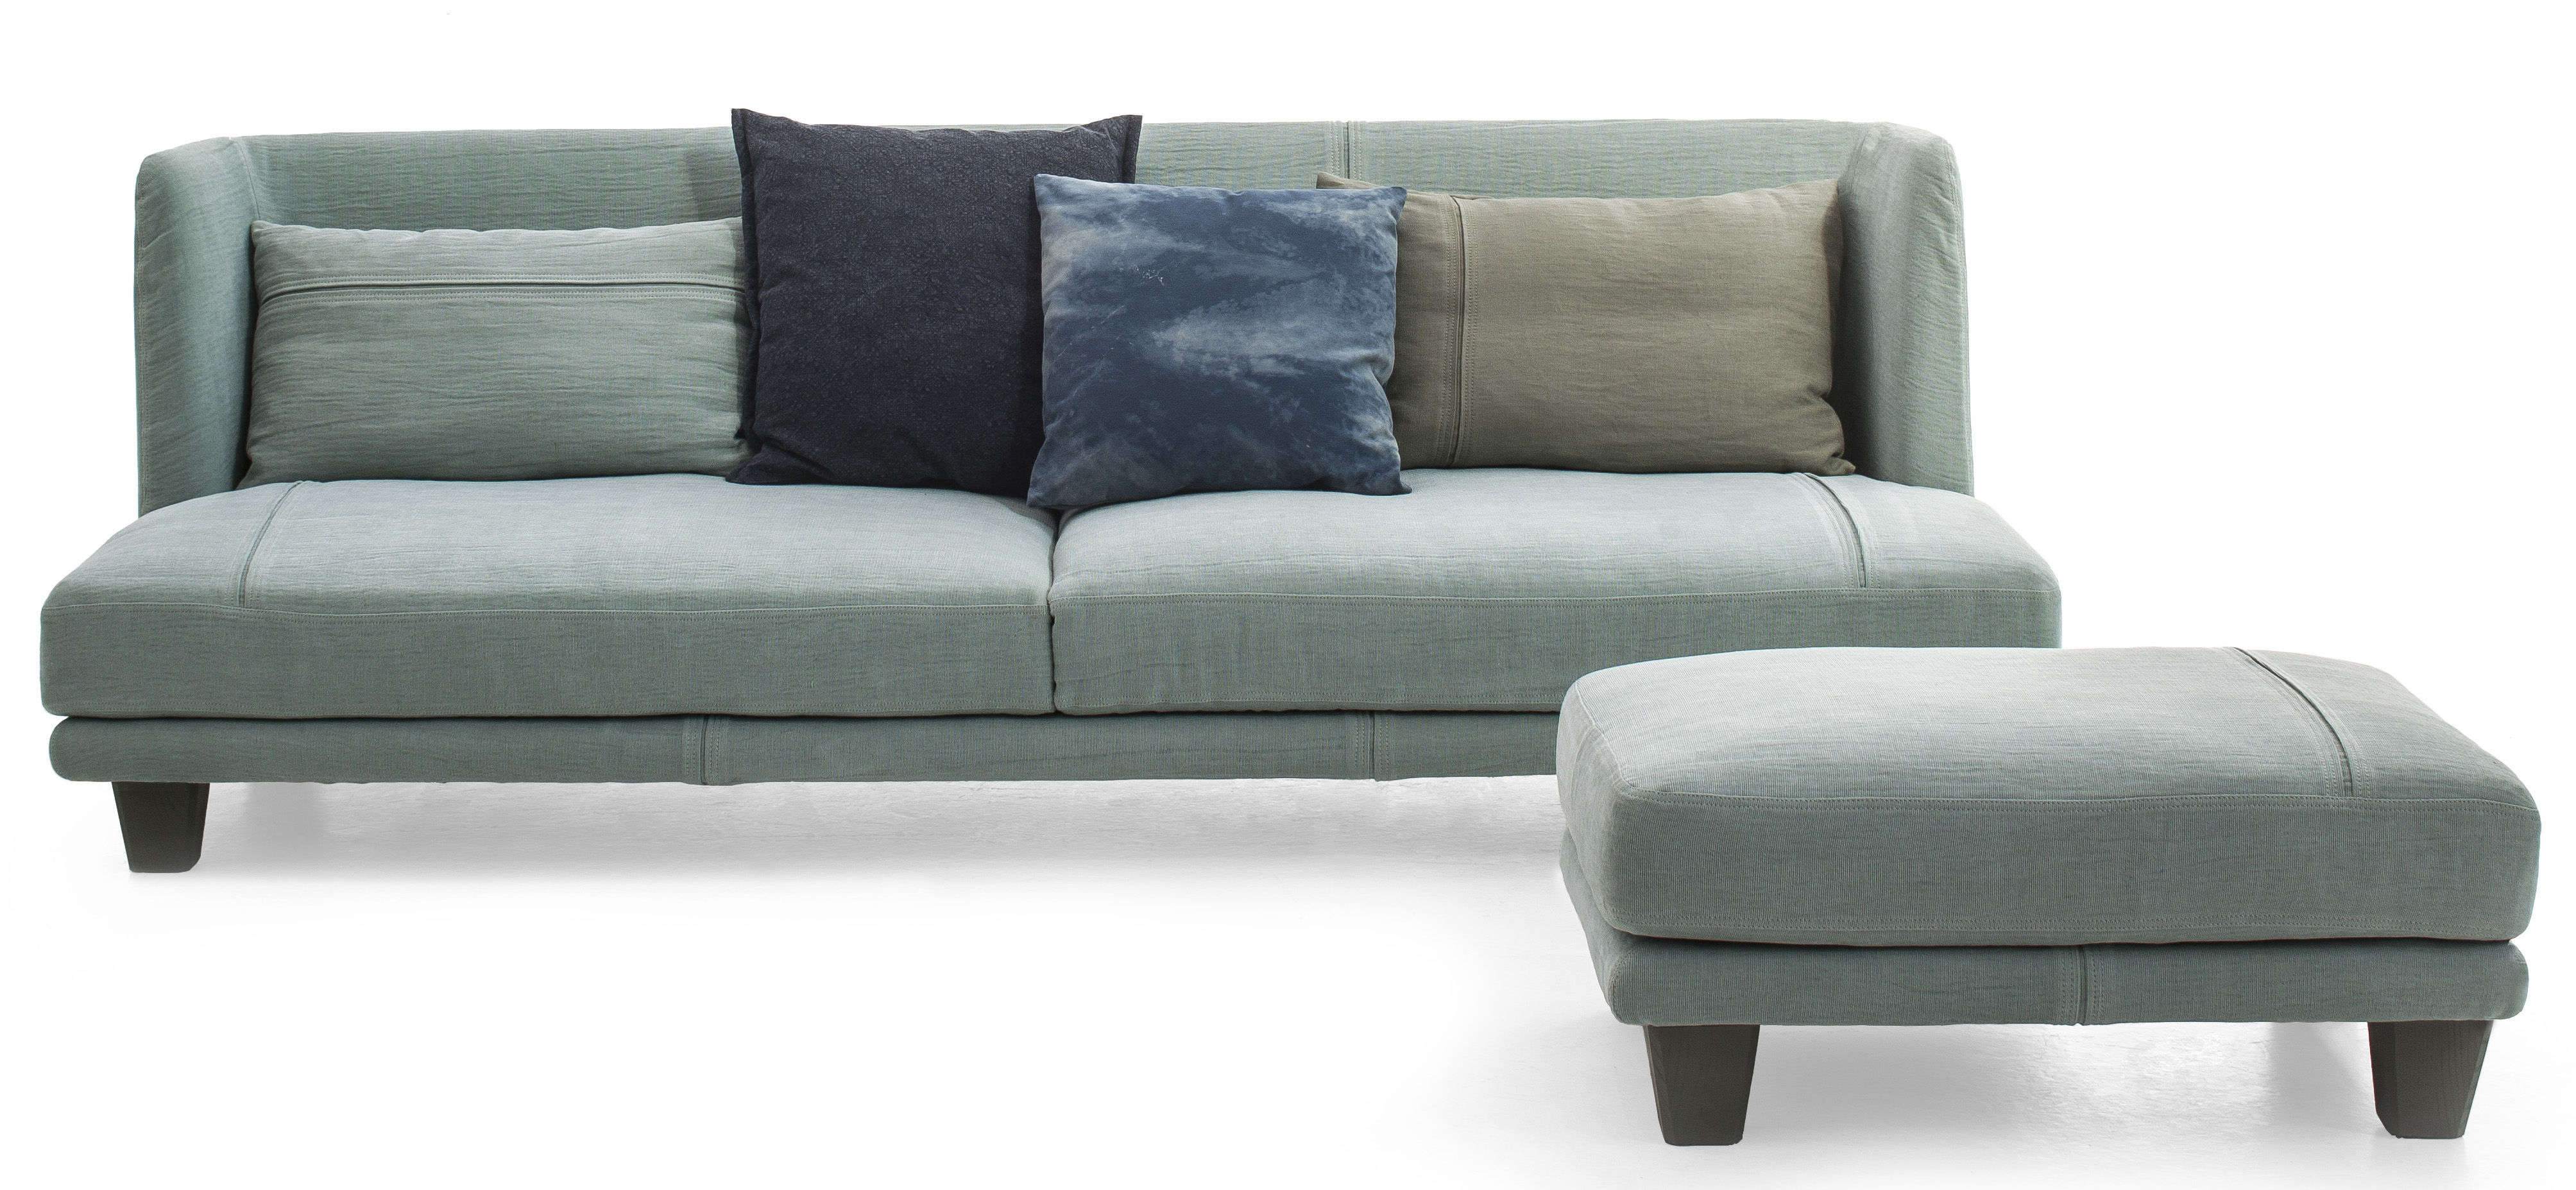 Furniture Sofas Gimme More Straight Sofa L 240 3 Seaters By Sel